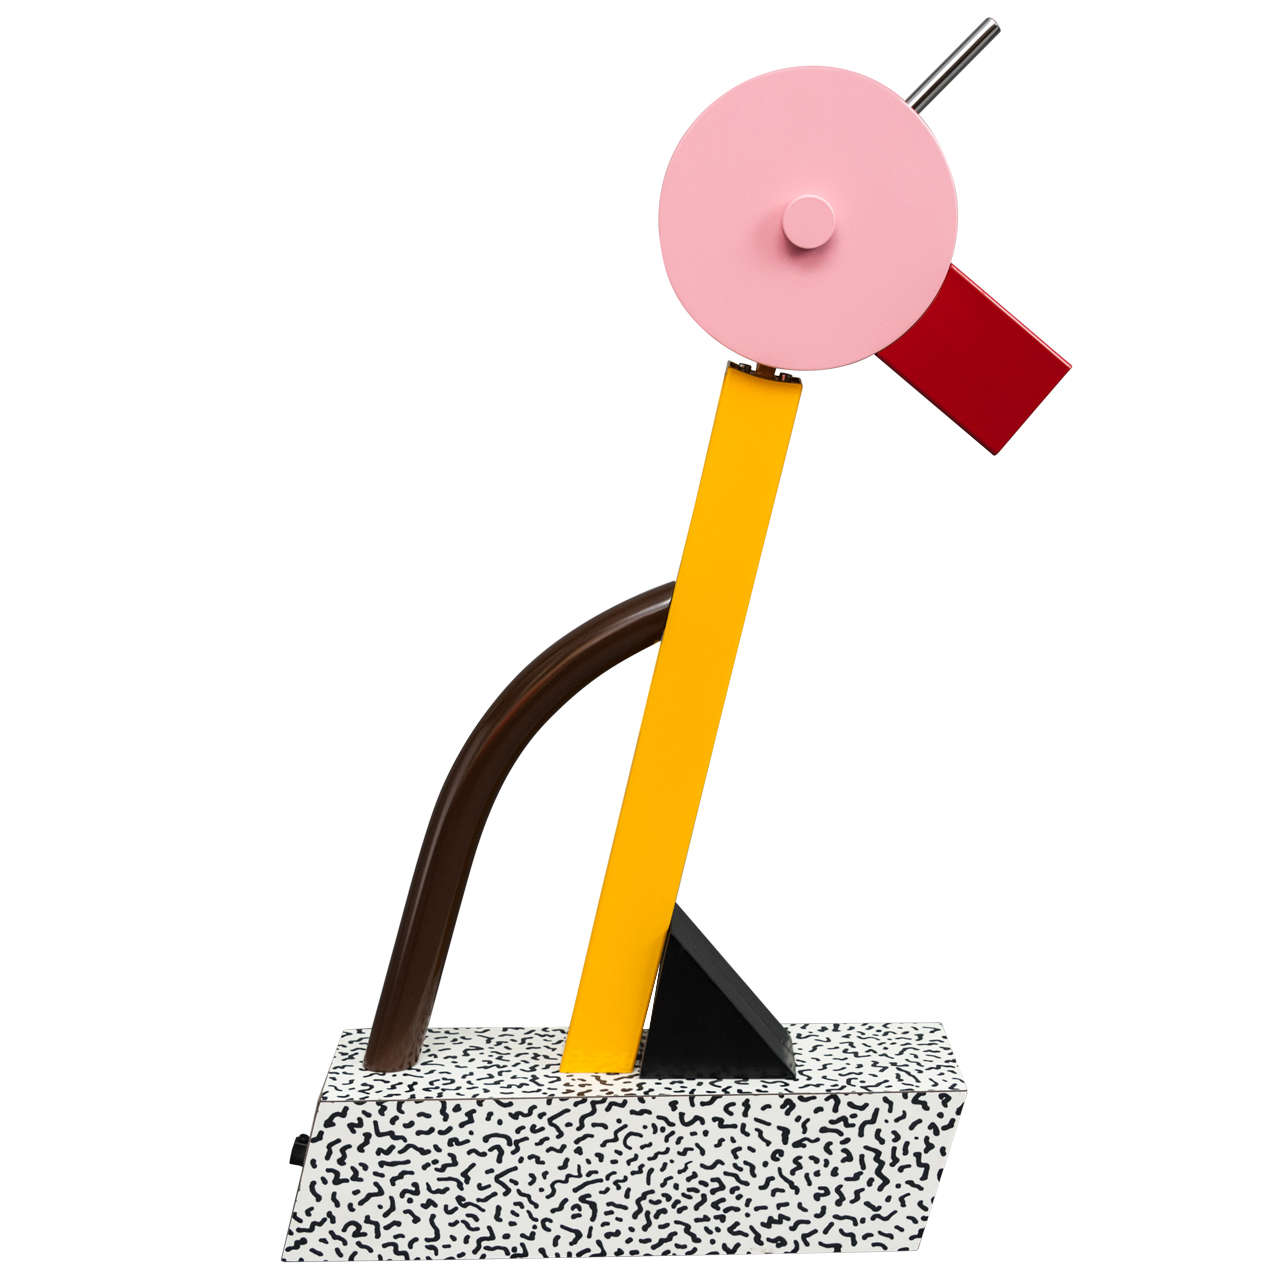 A Tahiti Lamp By Ettore Sottsass For Memphis At 1stdibs